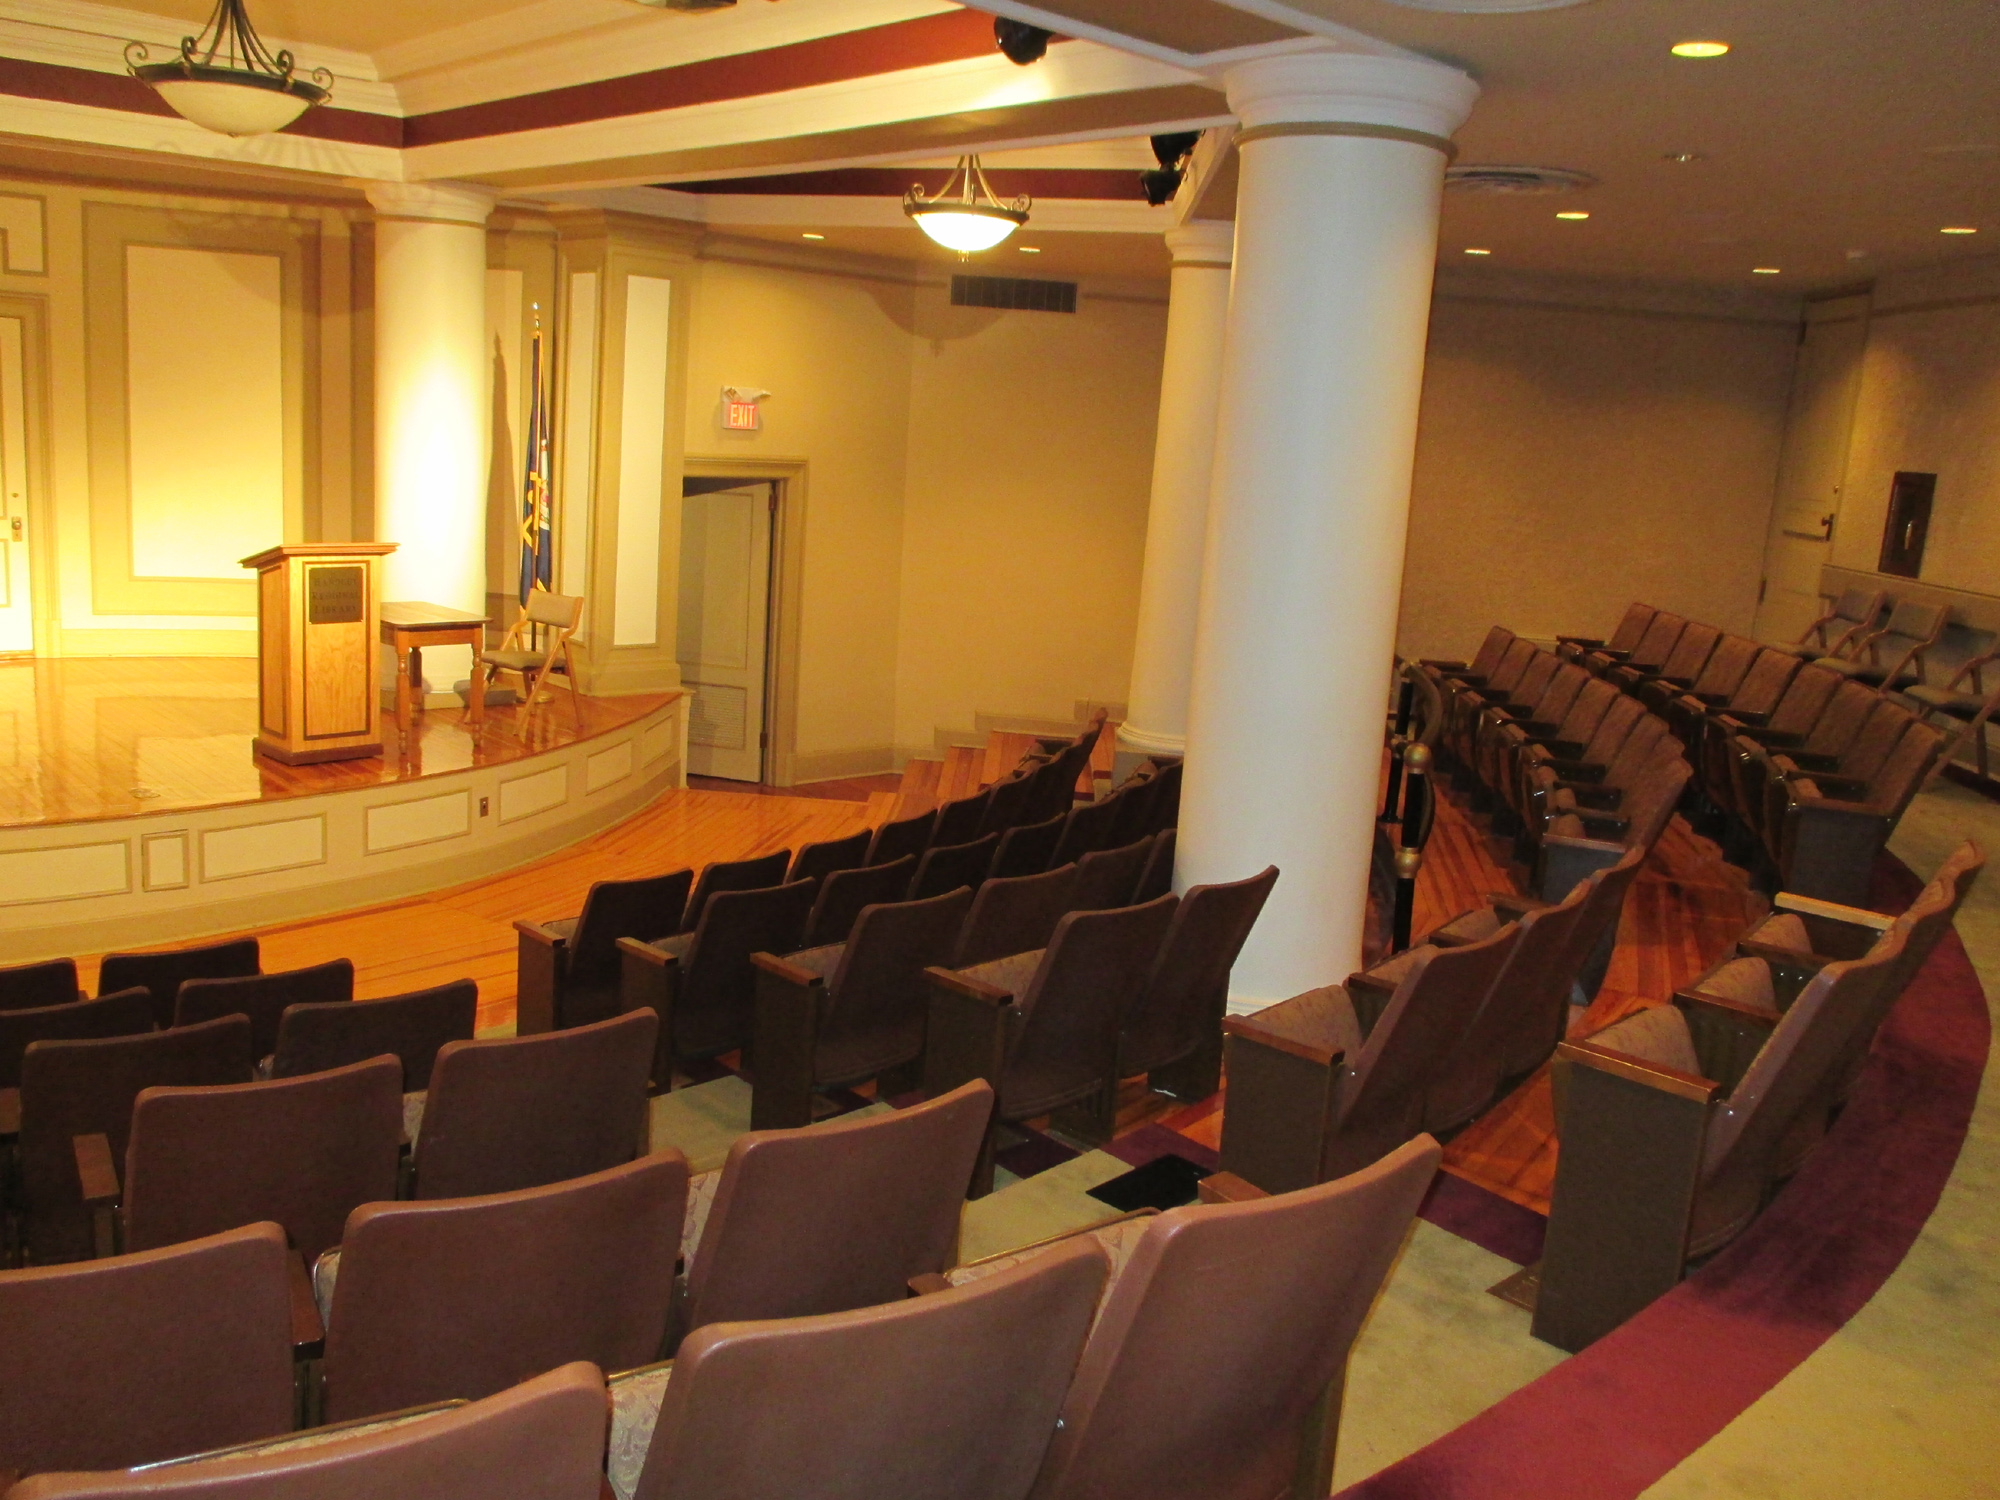 Basement Auditorium